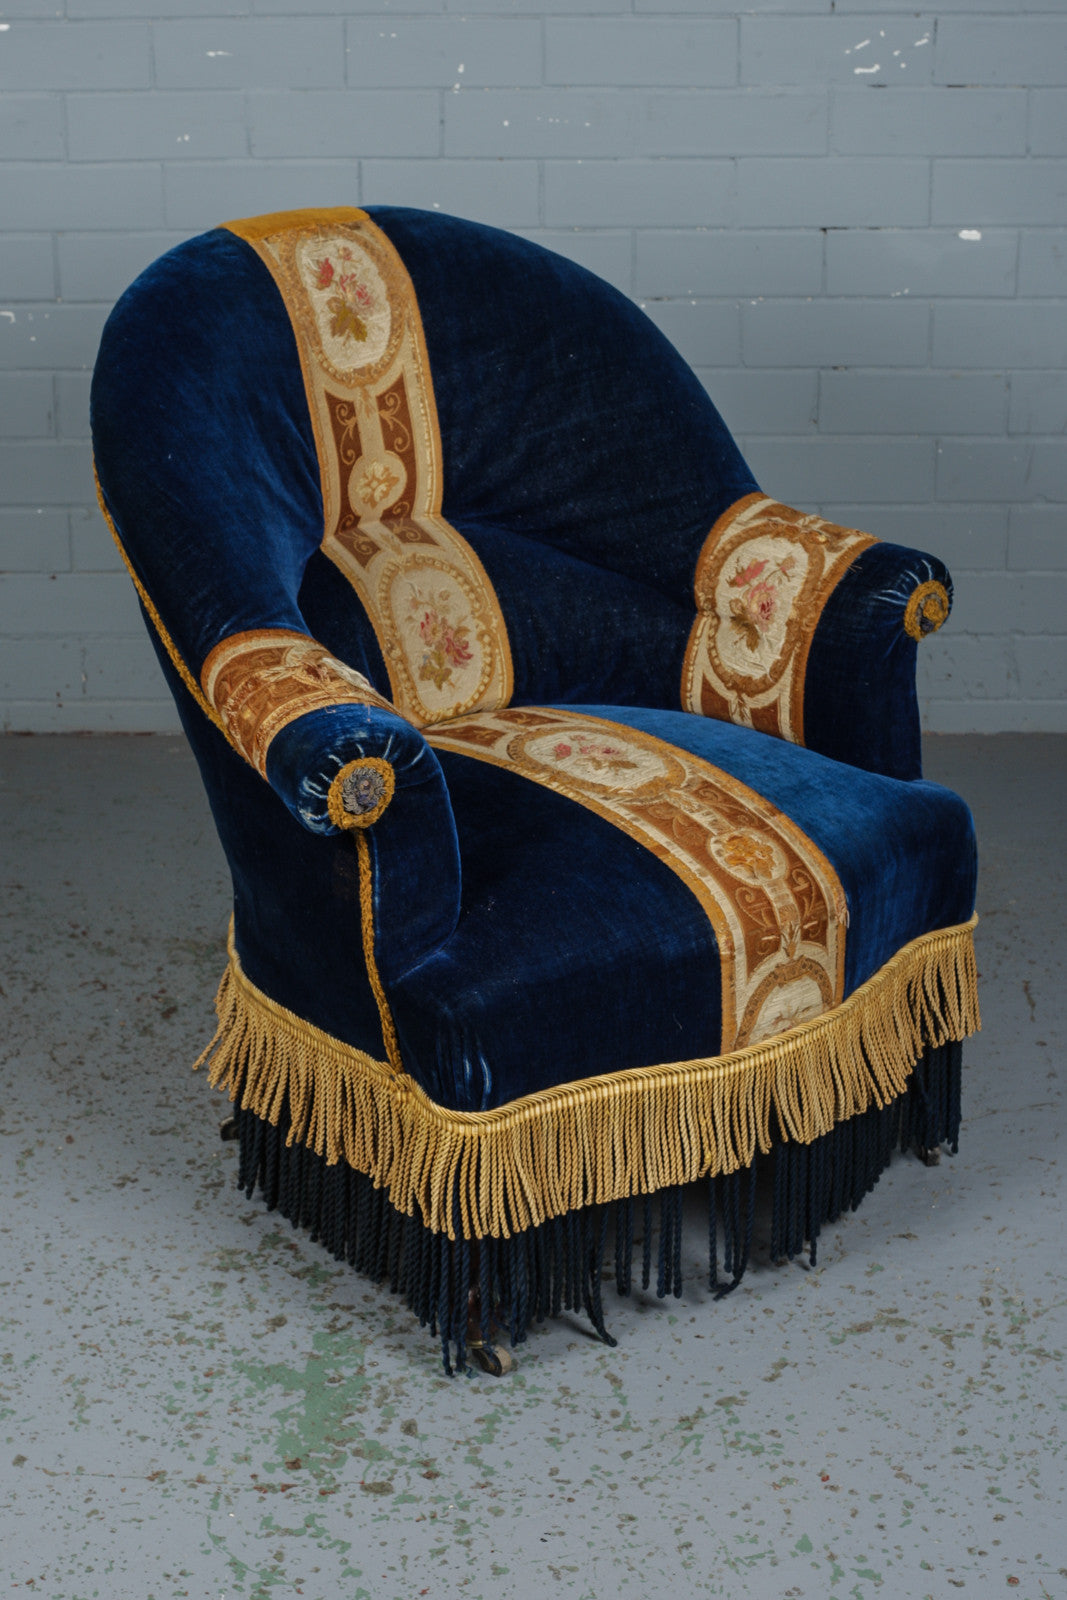 Victorian blue and yellow velvet armchair vagina available to buy for Industrious Interiors, an online vintage furniture and homeware store based in Nottingham.